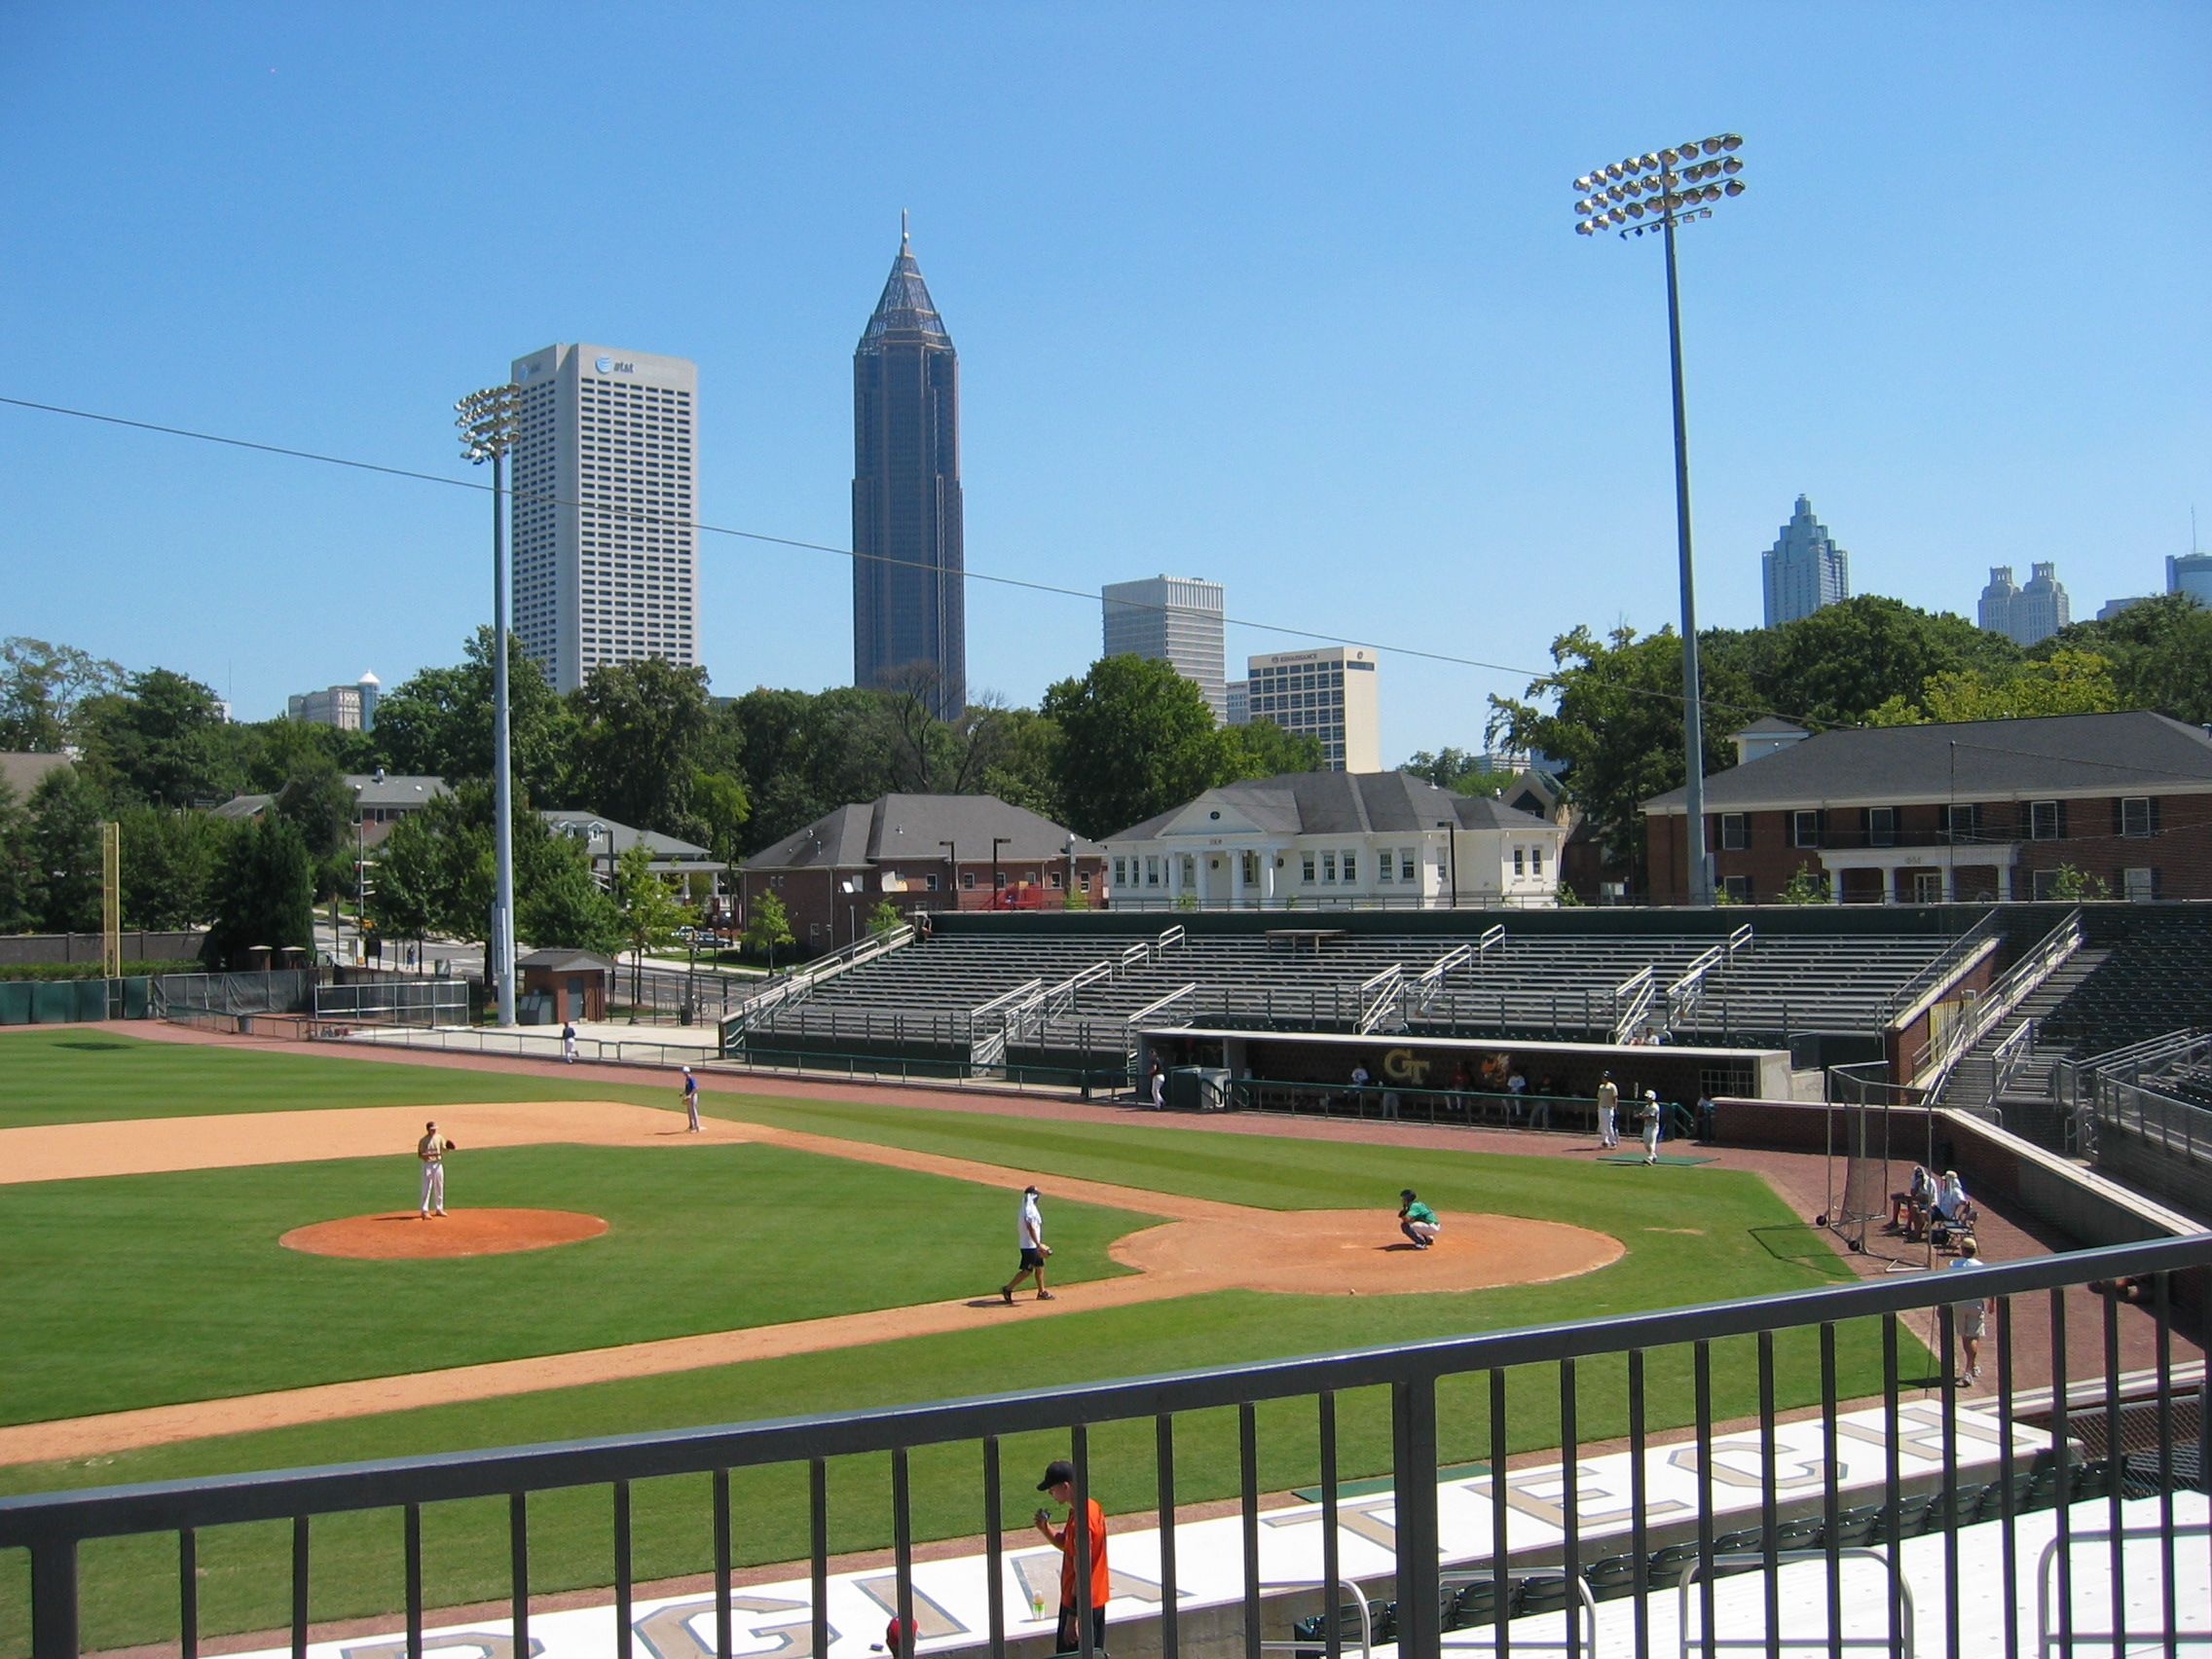 Russ Chandler Stadium Home Of Georgia Tech Baseball Has Some Great City Views Of Atlanta Georgia Tech Yellow Jackets Georgia Tech States In America